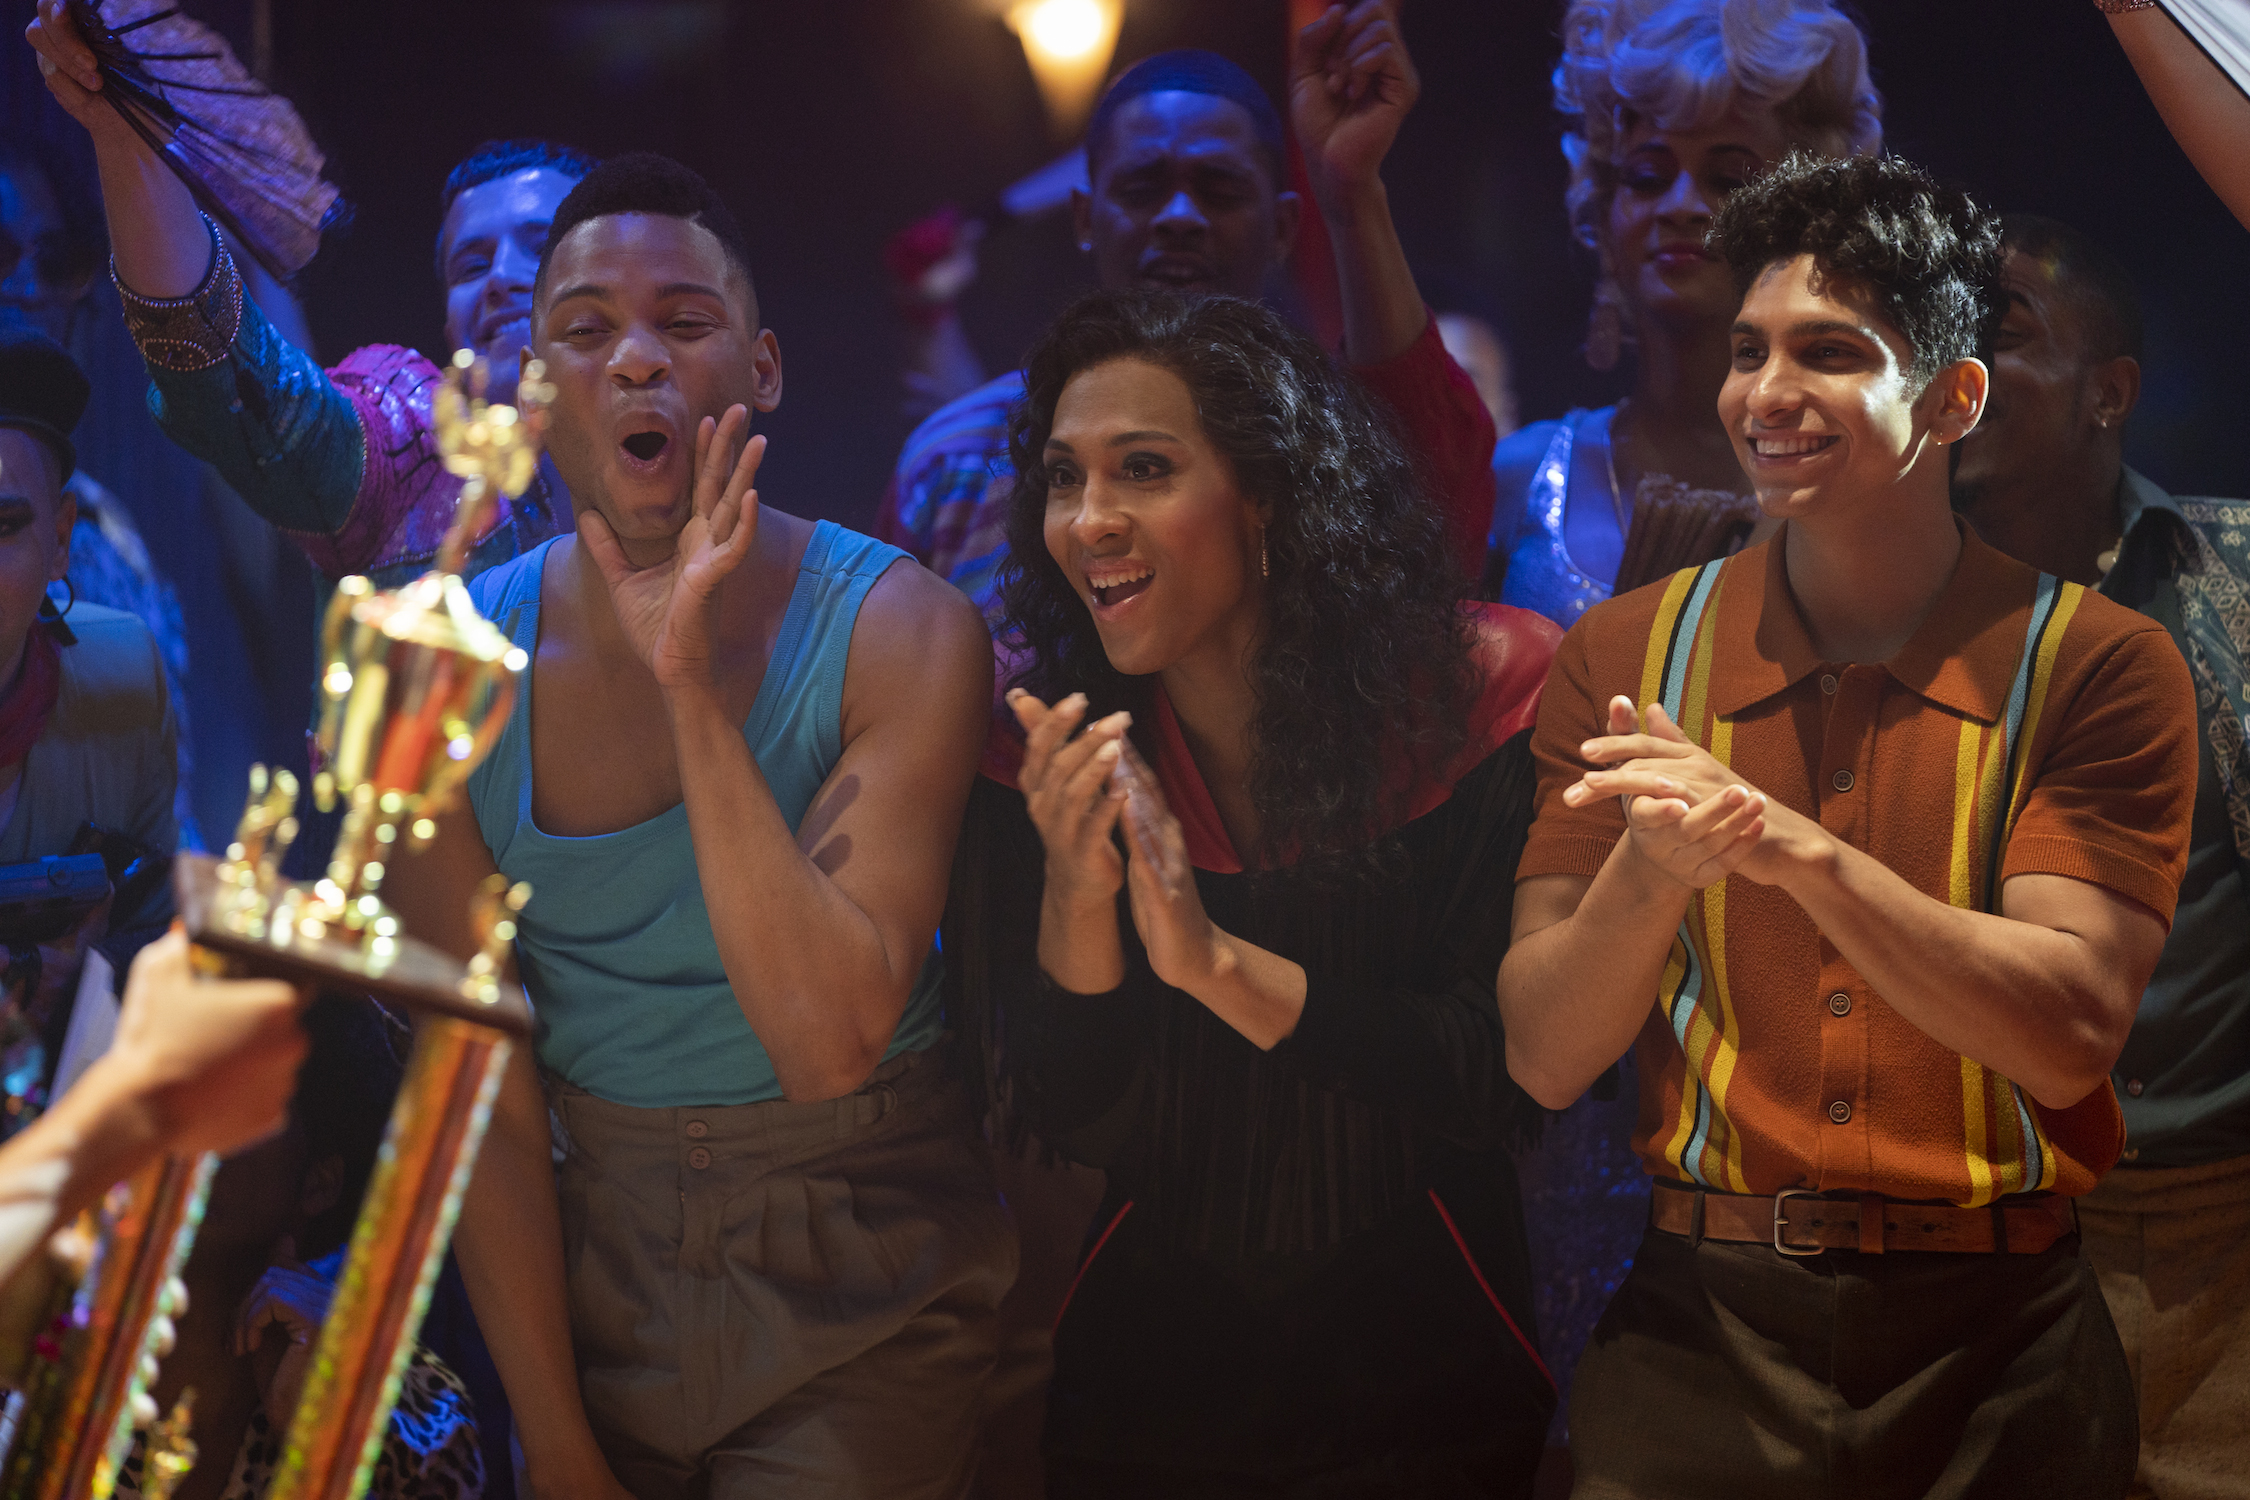 After Huge Boost in Ratings, FX Renews 'Pose' for Season 3